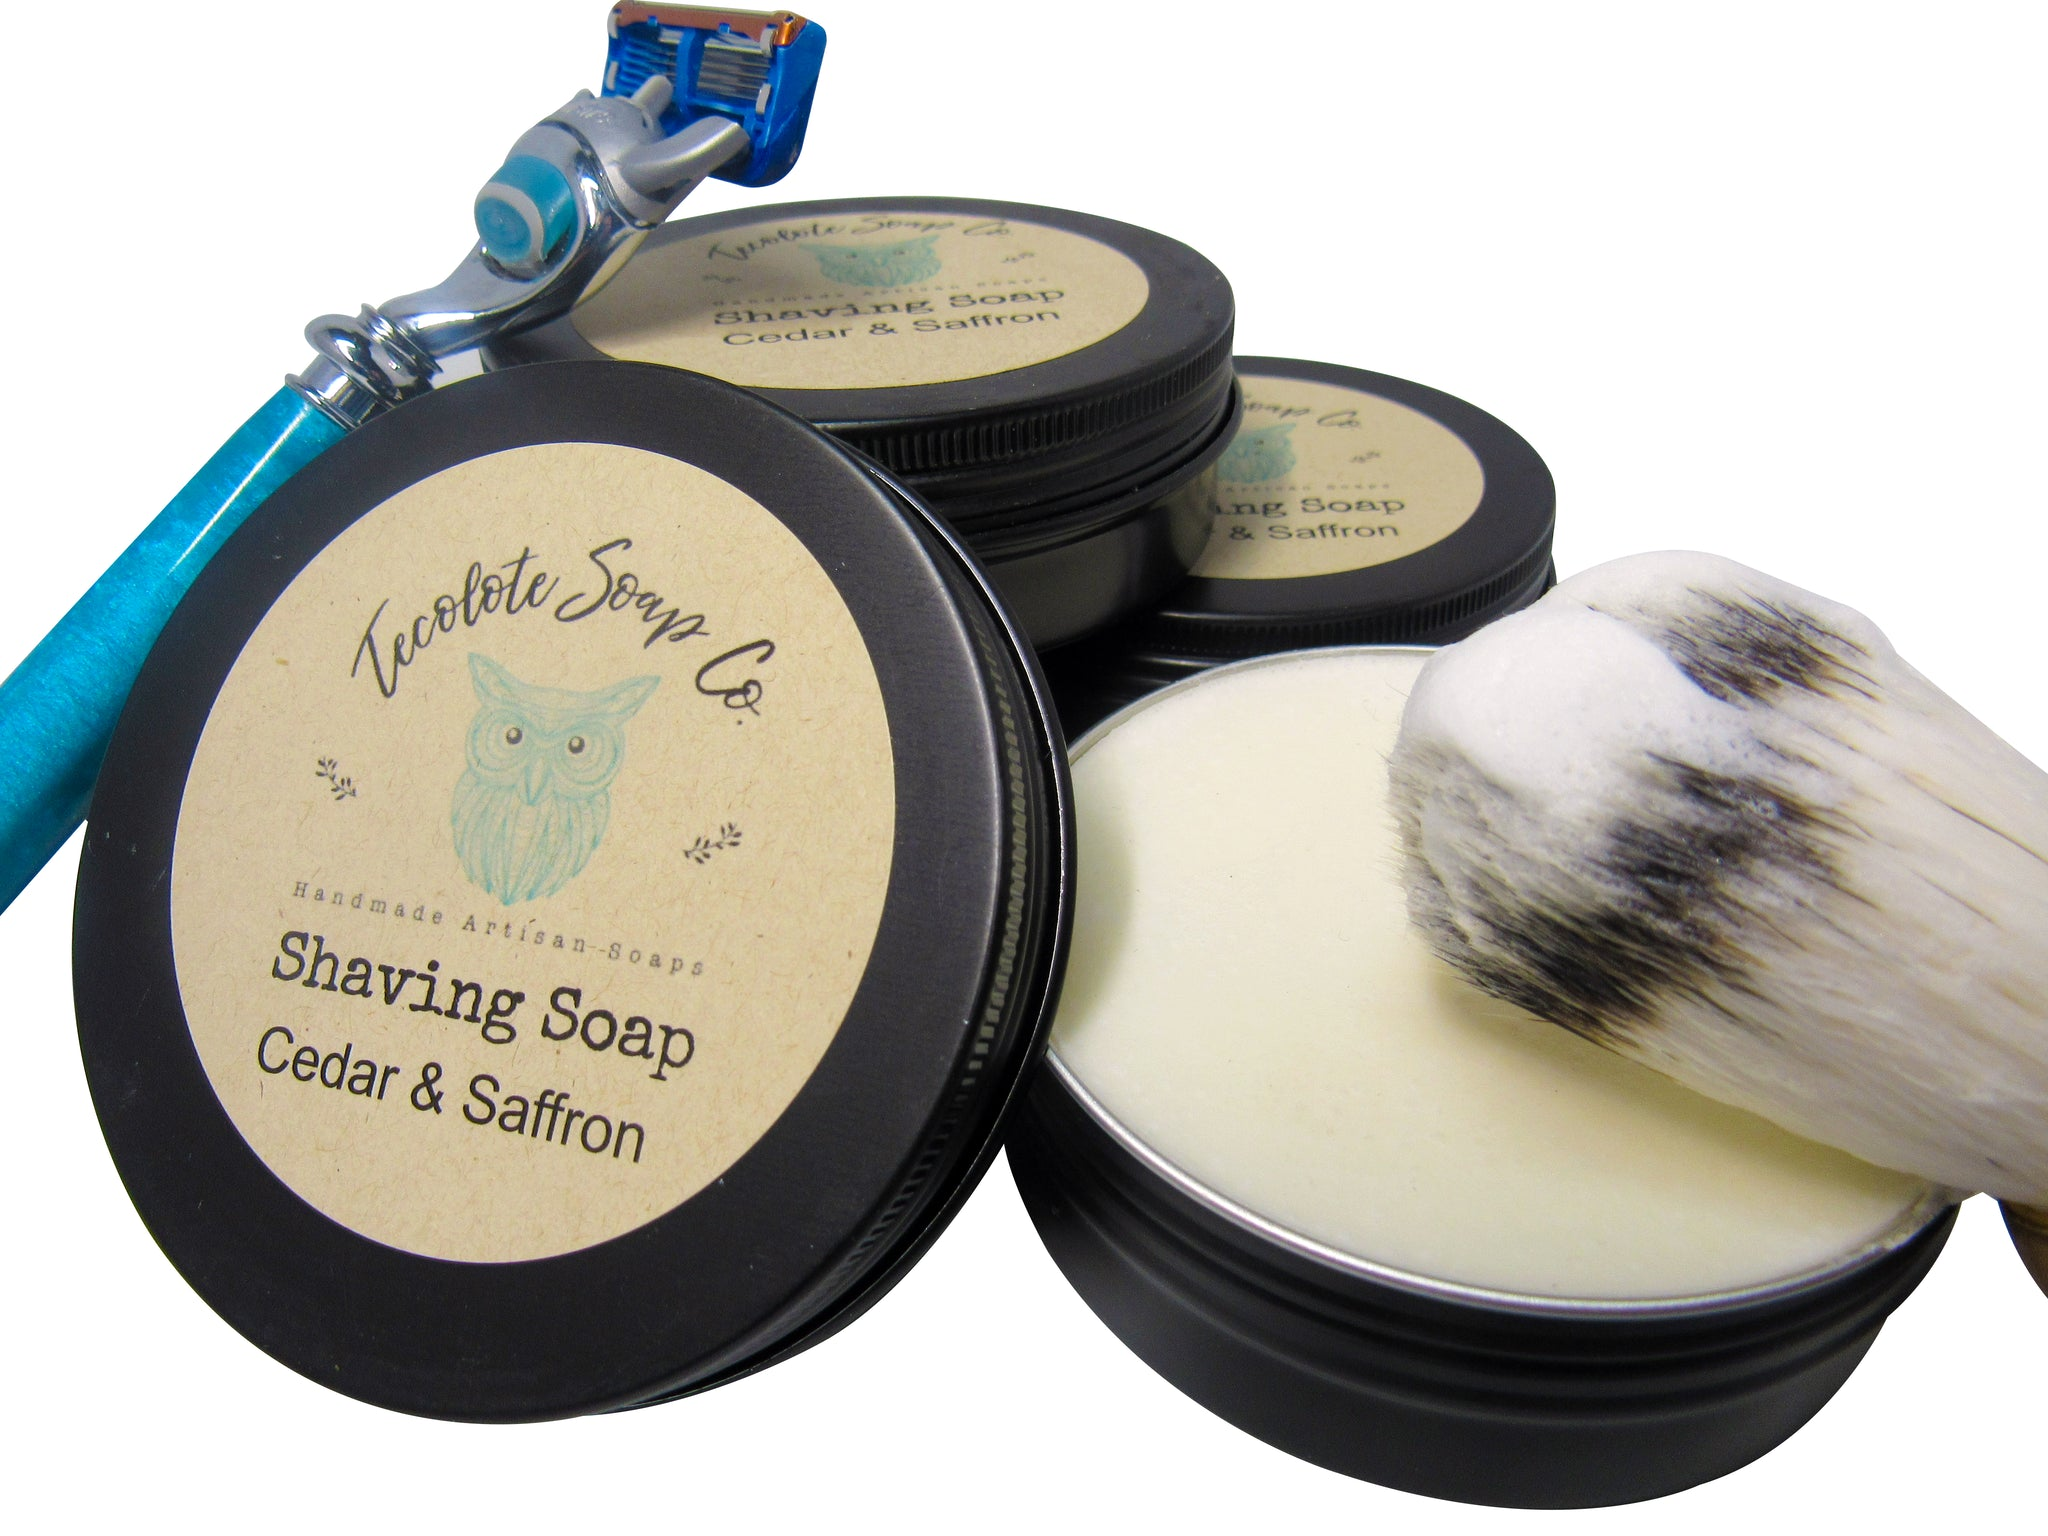 Cedar & Saffron Shaving Soap